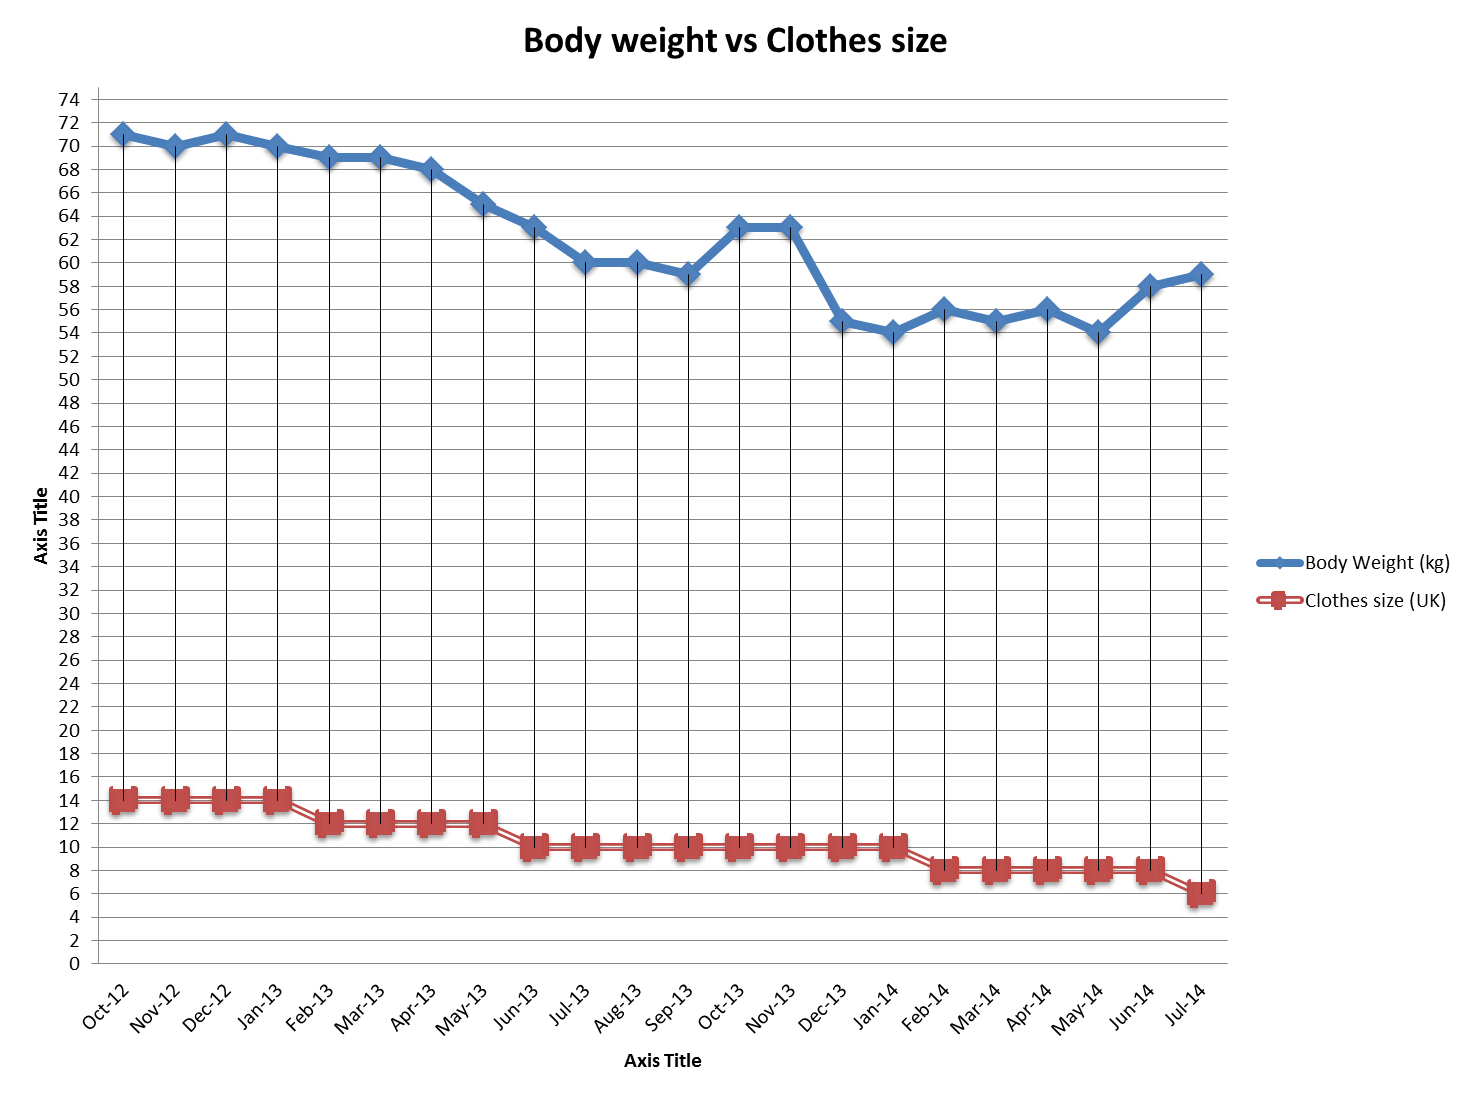 Weight And Dress Size Correlation